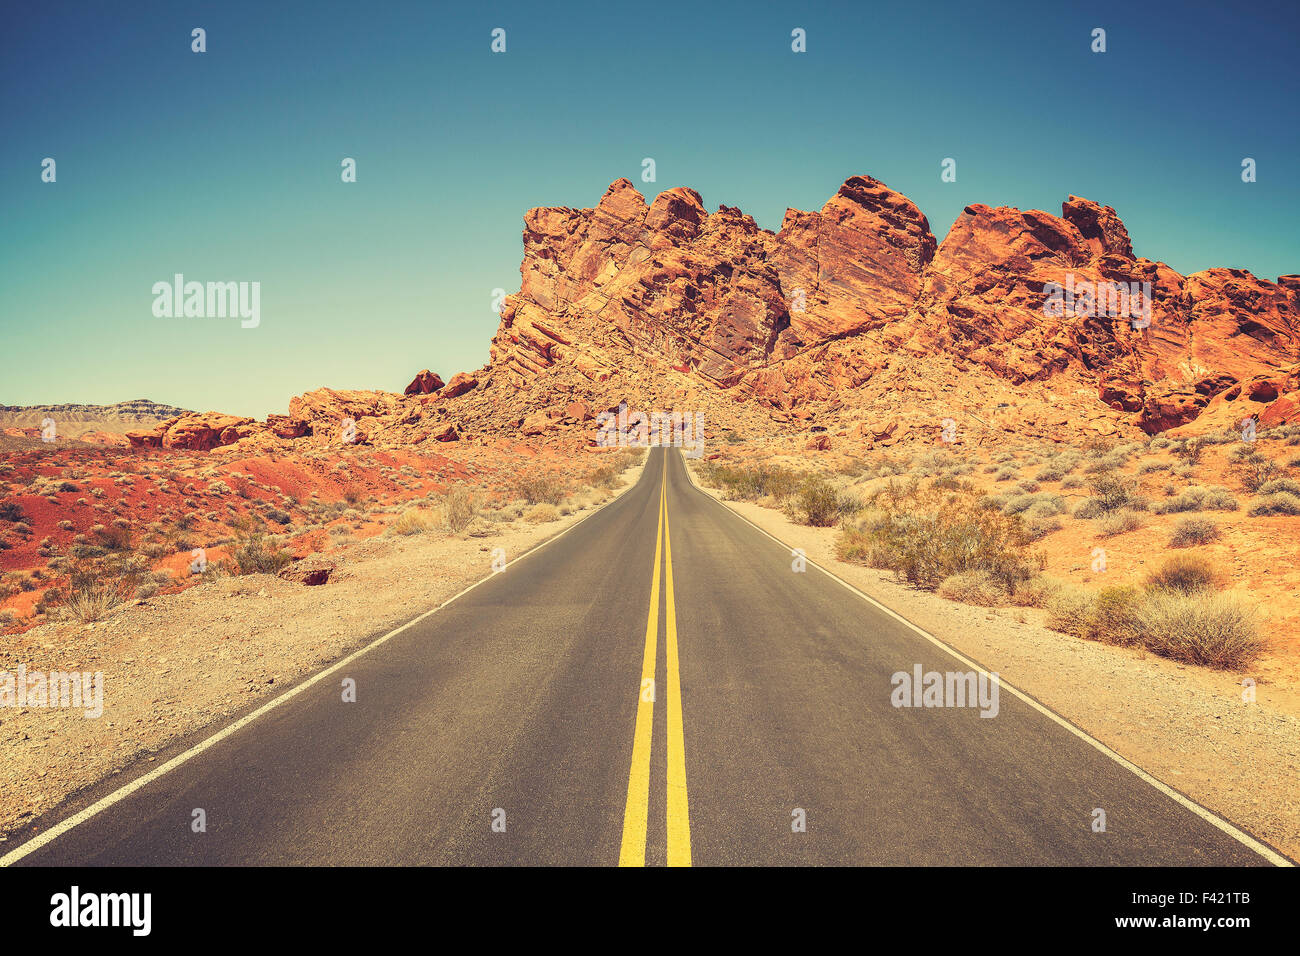 Retro stylized road through rocky desert in Valley of Fire State Park, Nevada. - Stock Image